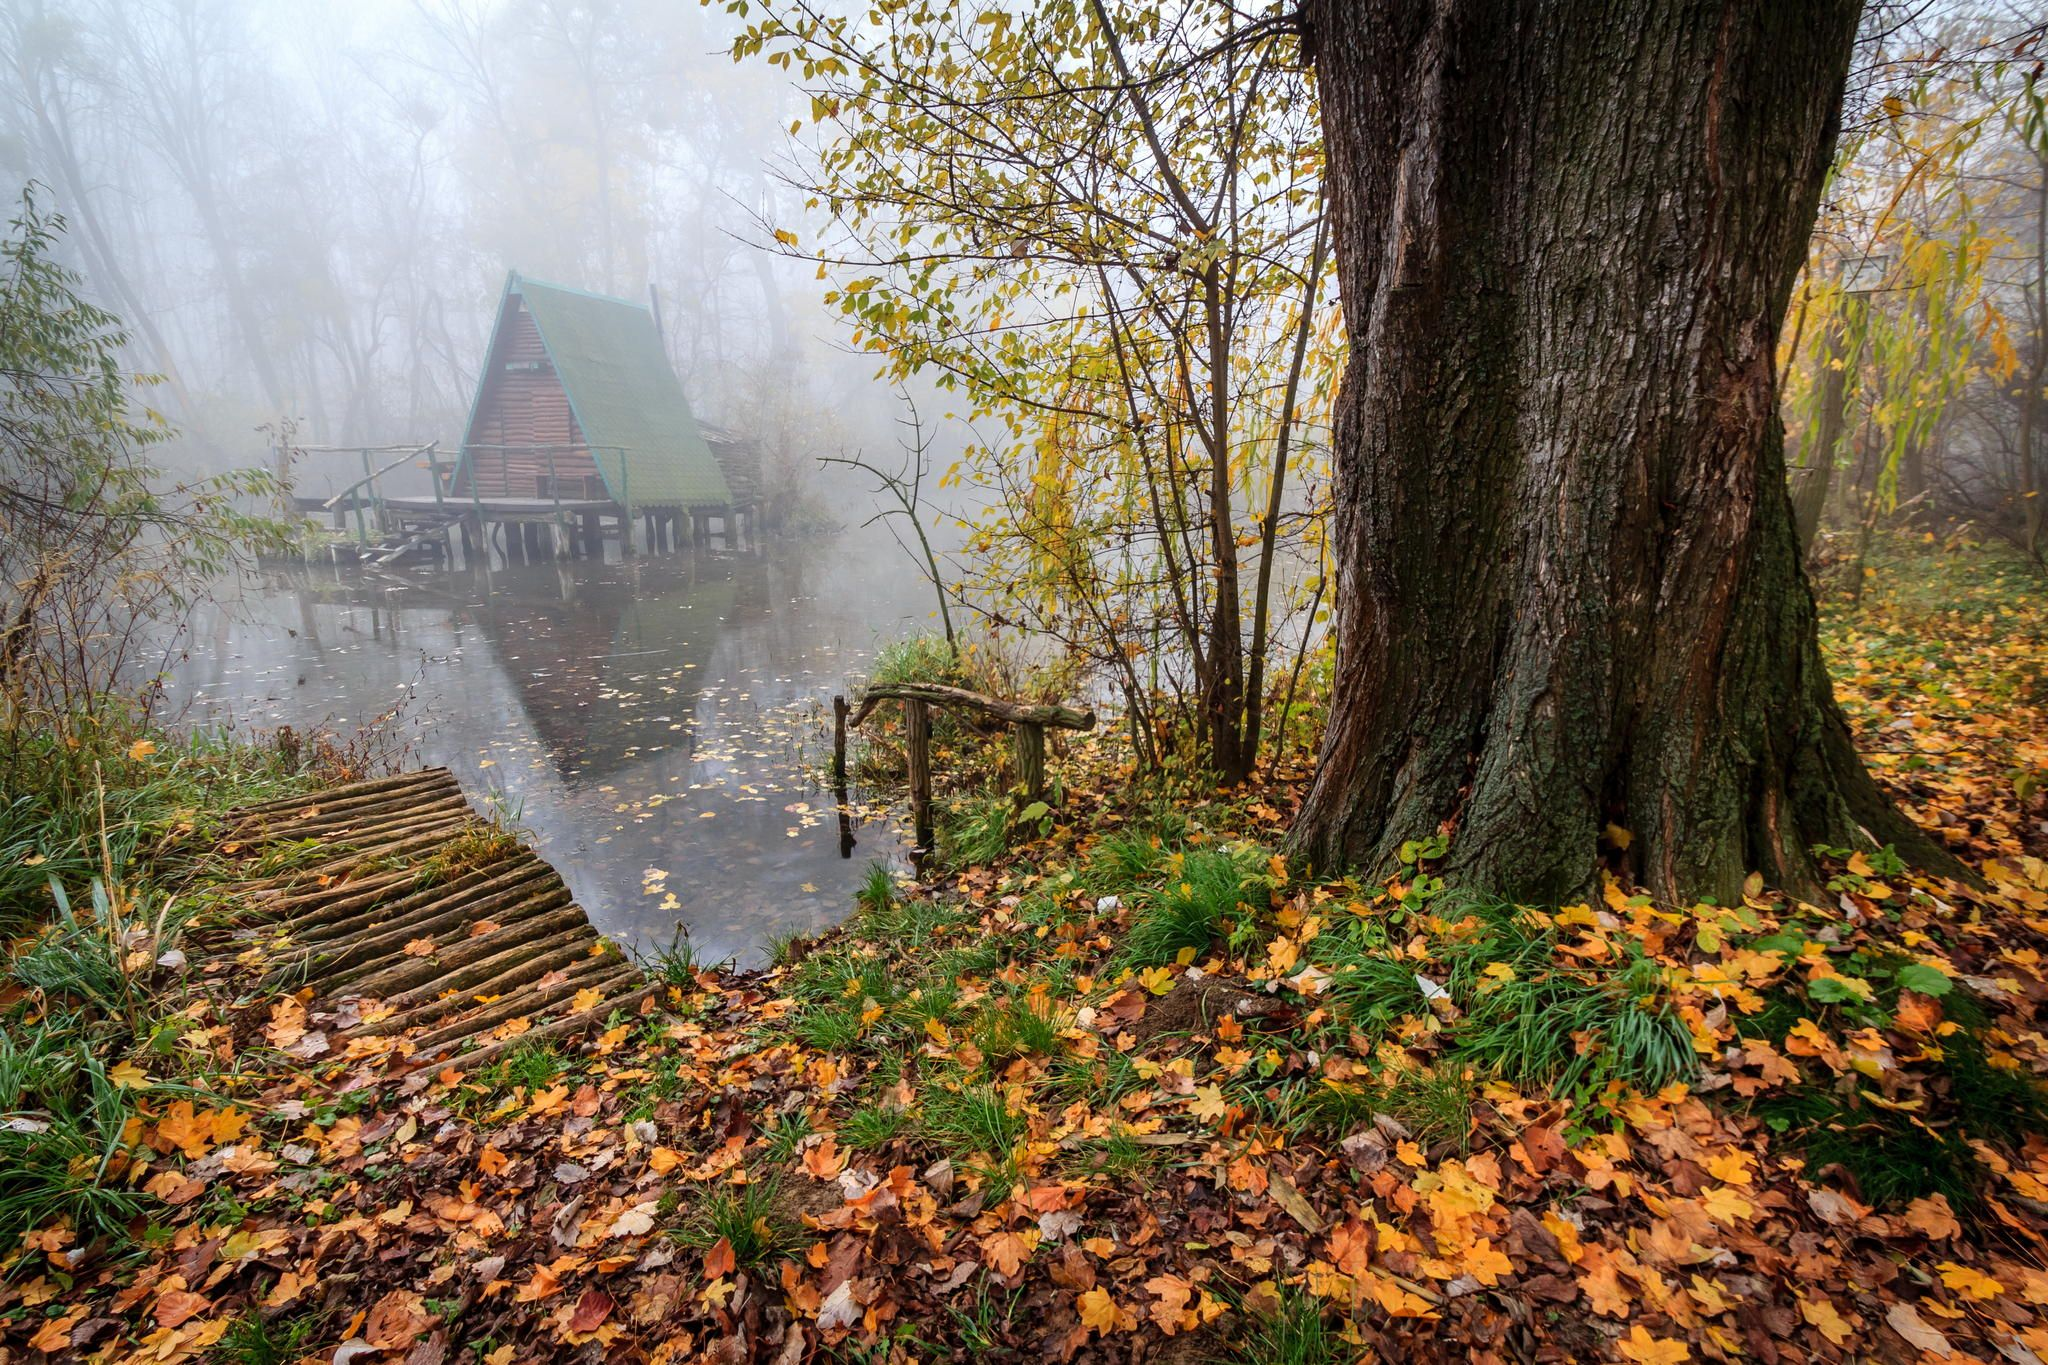 Cottage on the water in autumn by Zoltan Duray on 500px